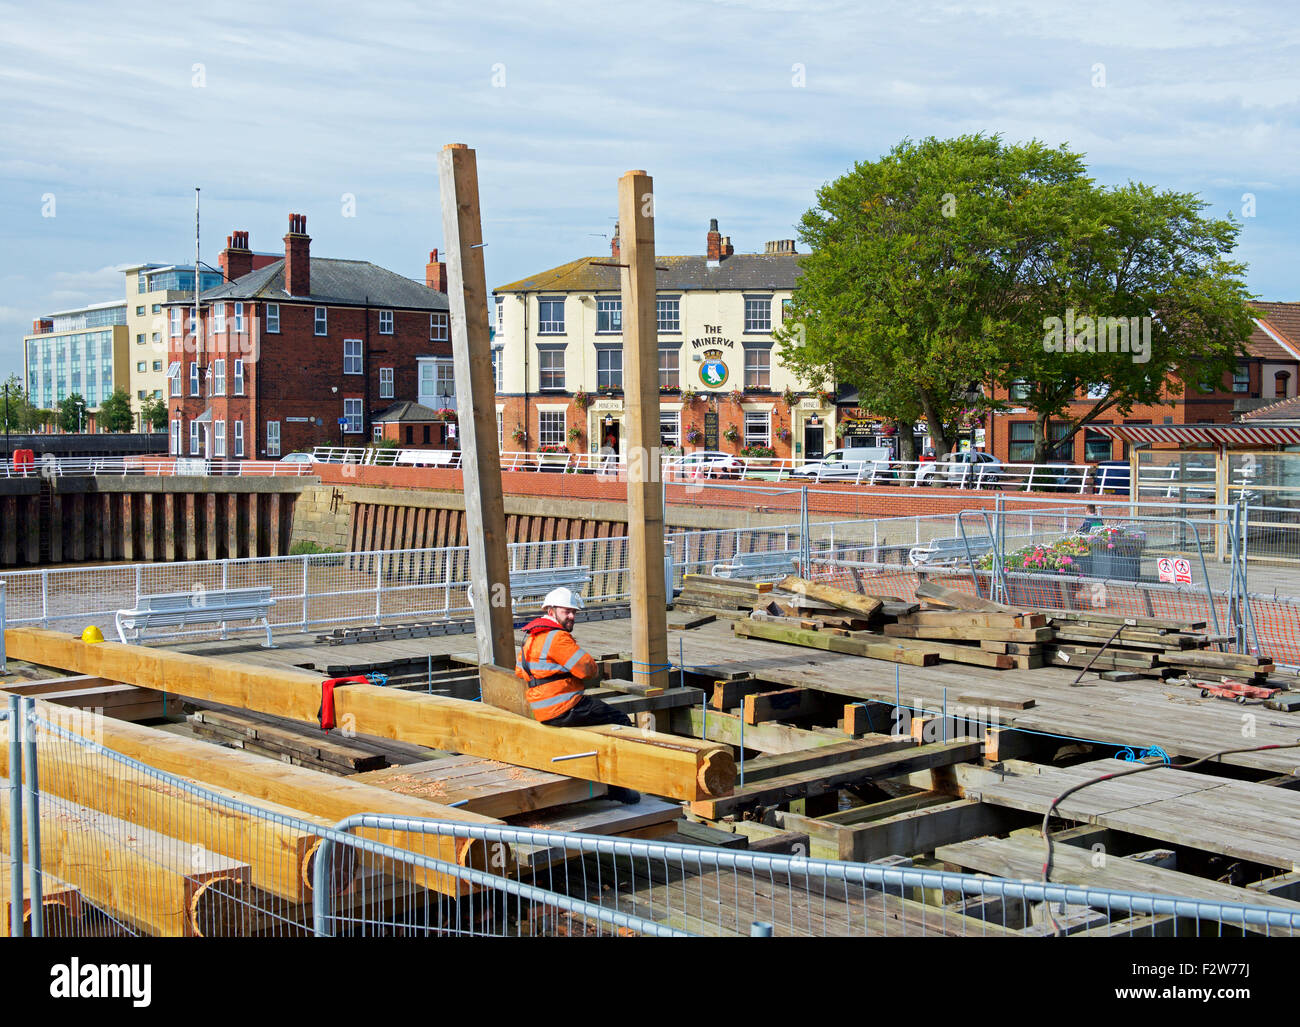 Victoria pier being renovated, Kingston-upon-Hull, East Riding of Yorkshire, England UK - Stock Image